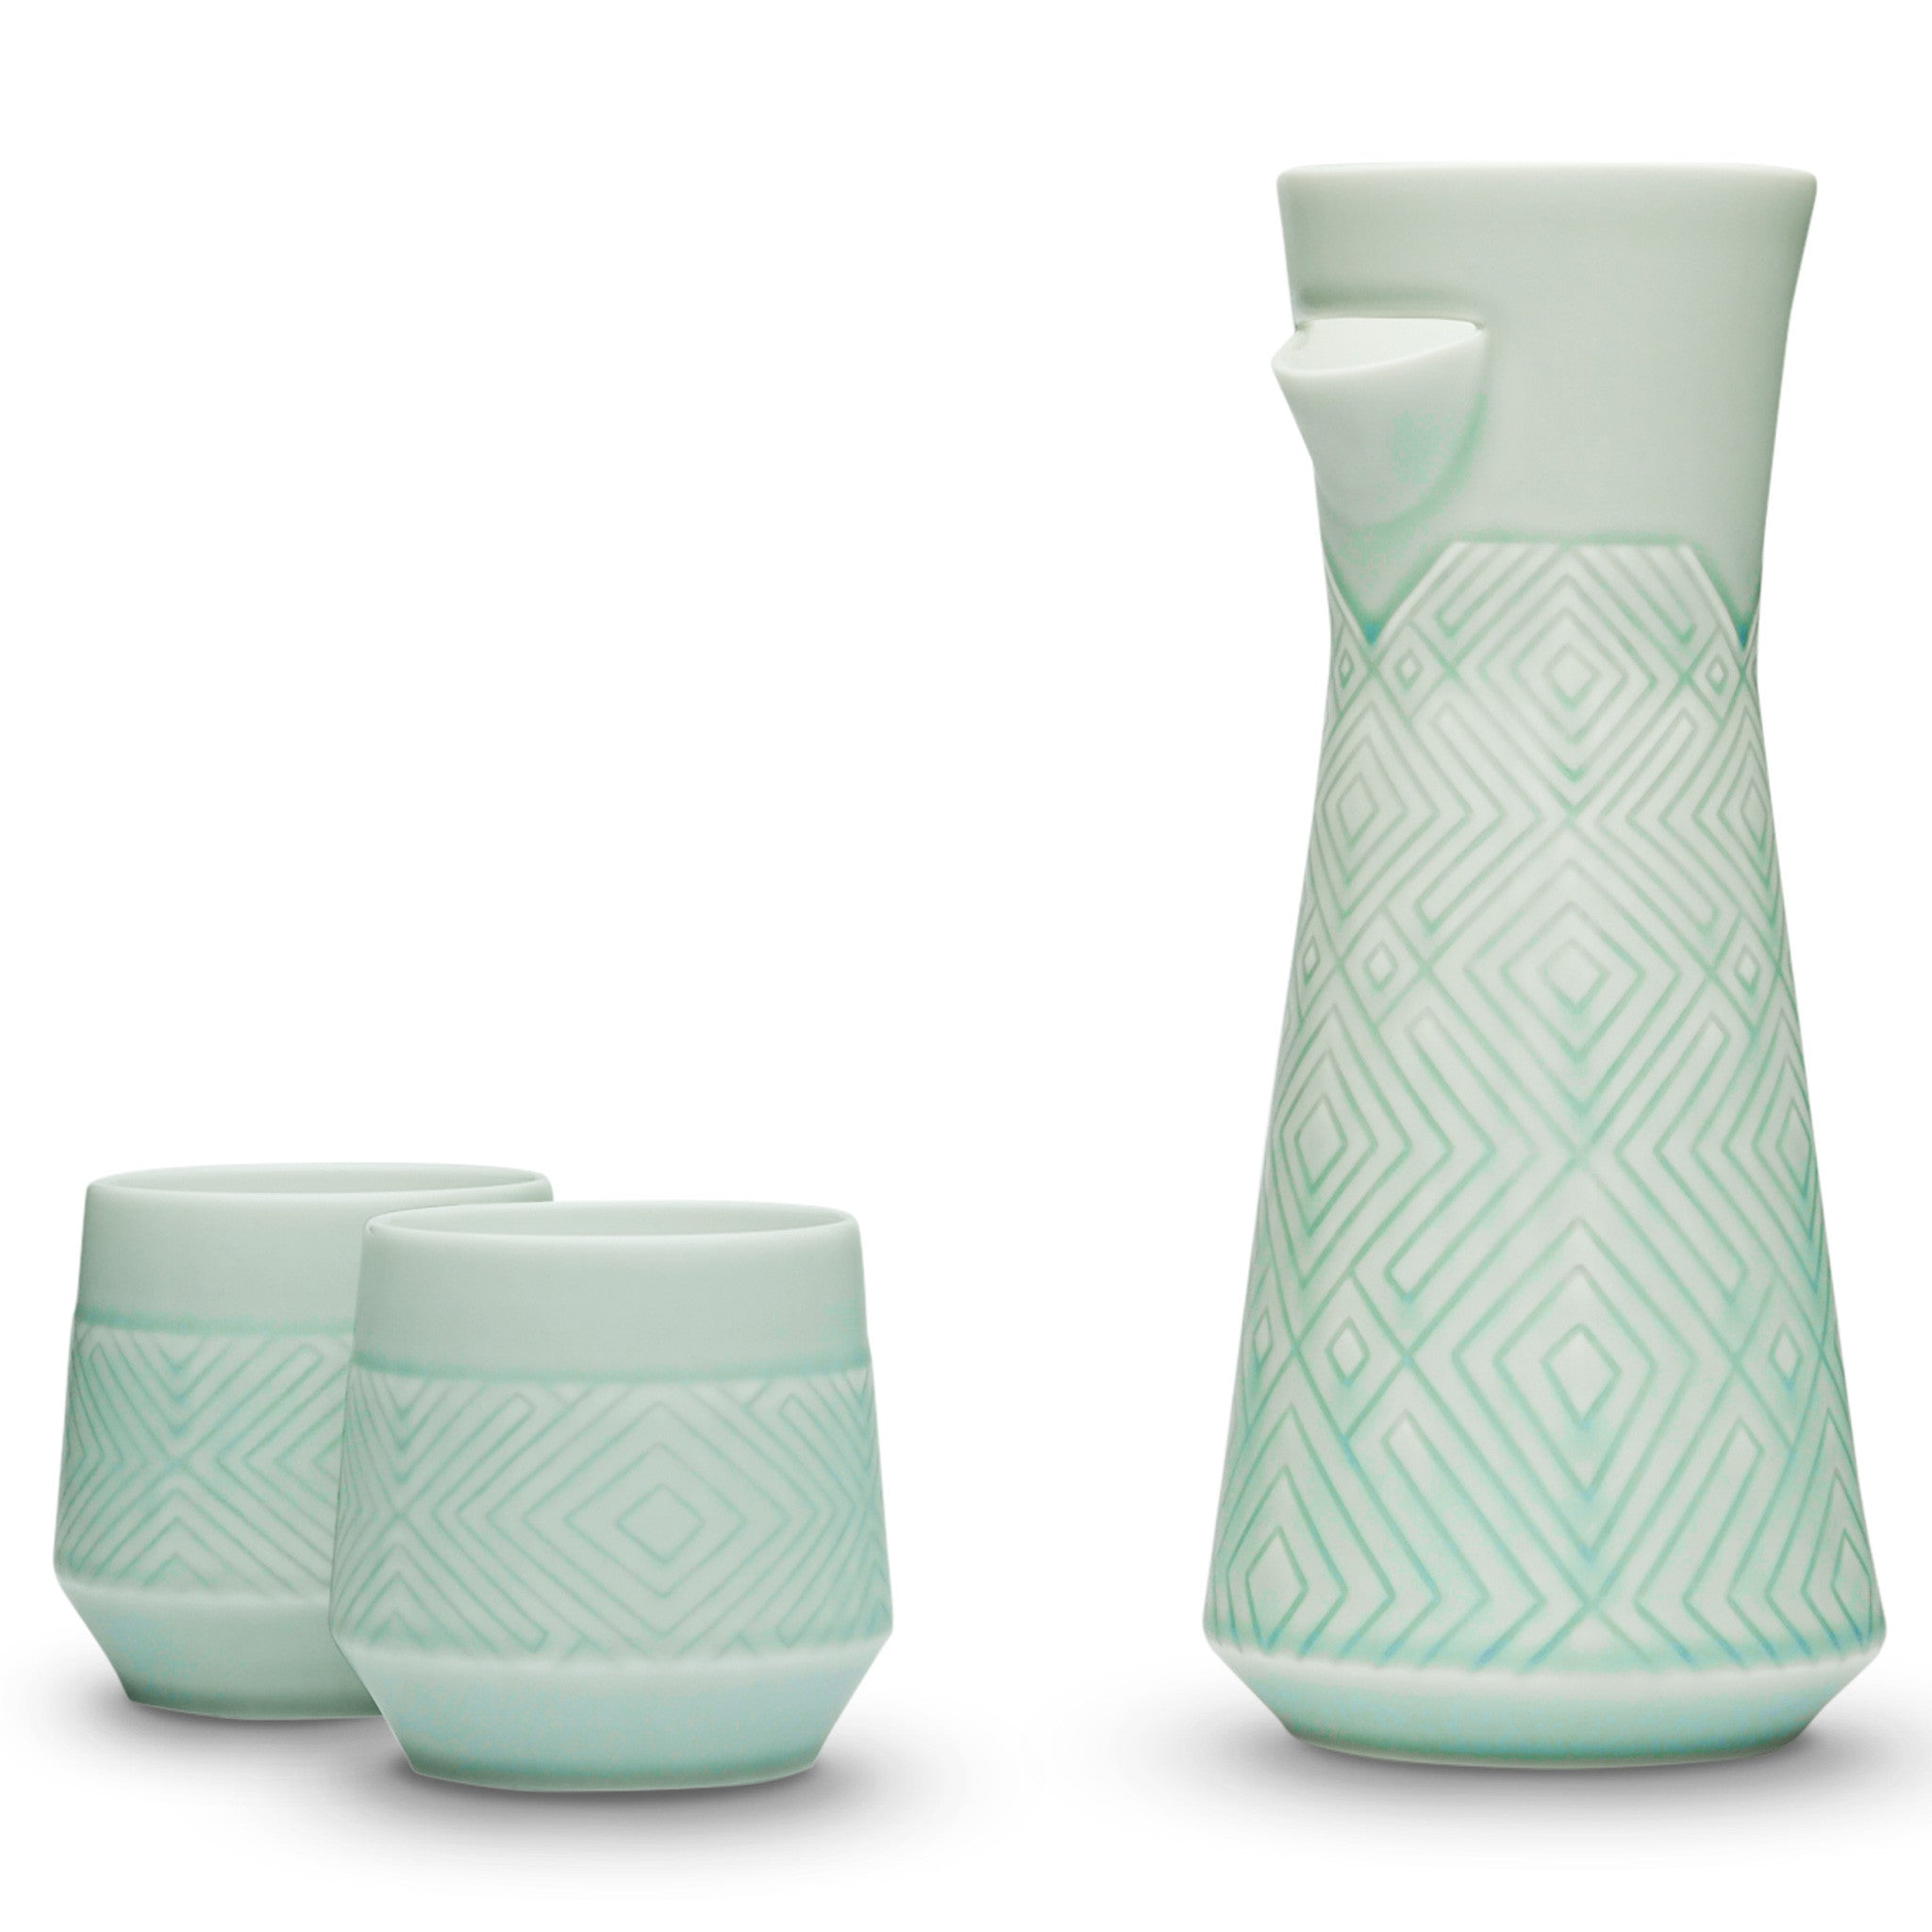 The Miracle Carafe Set